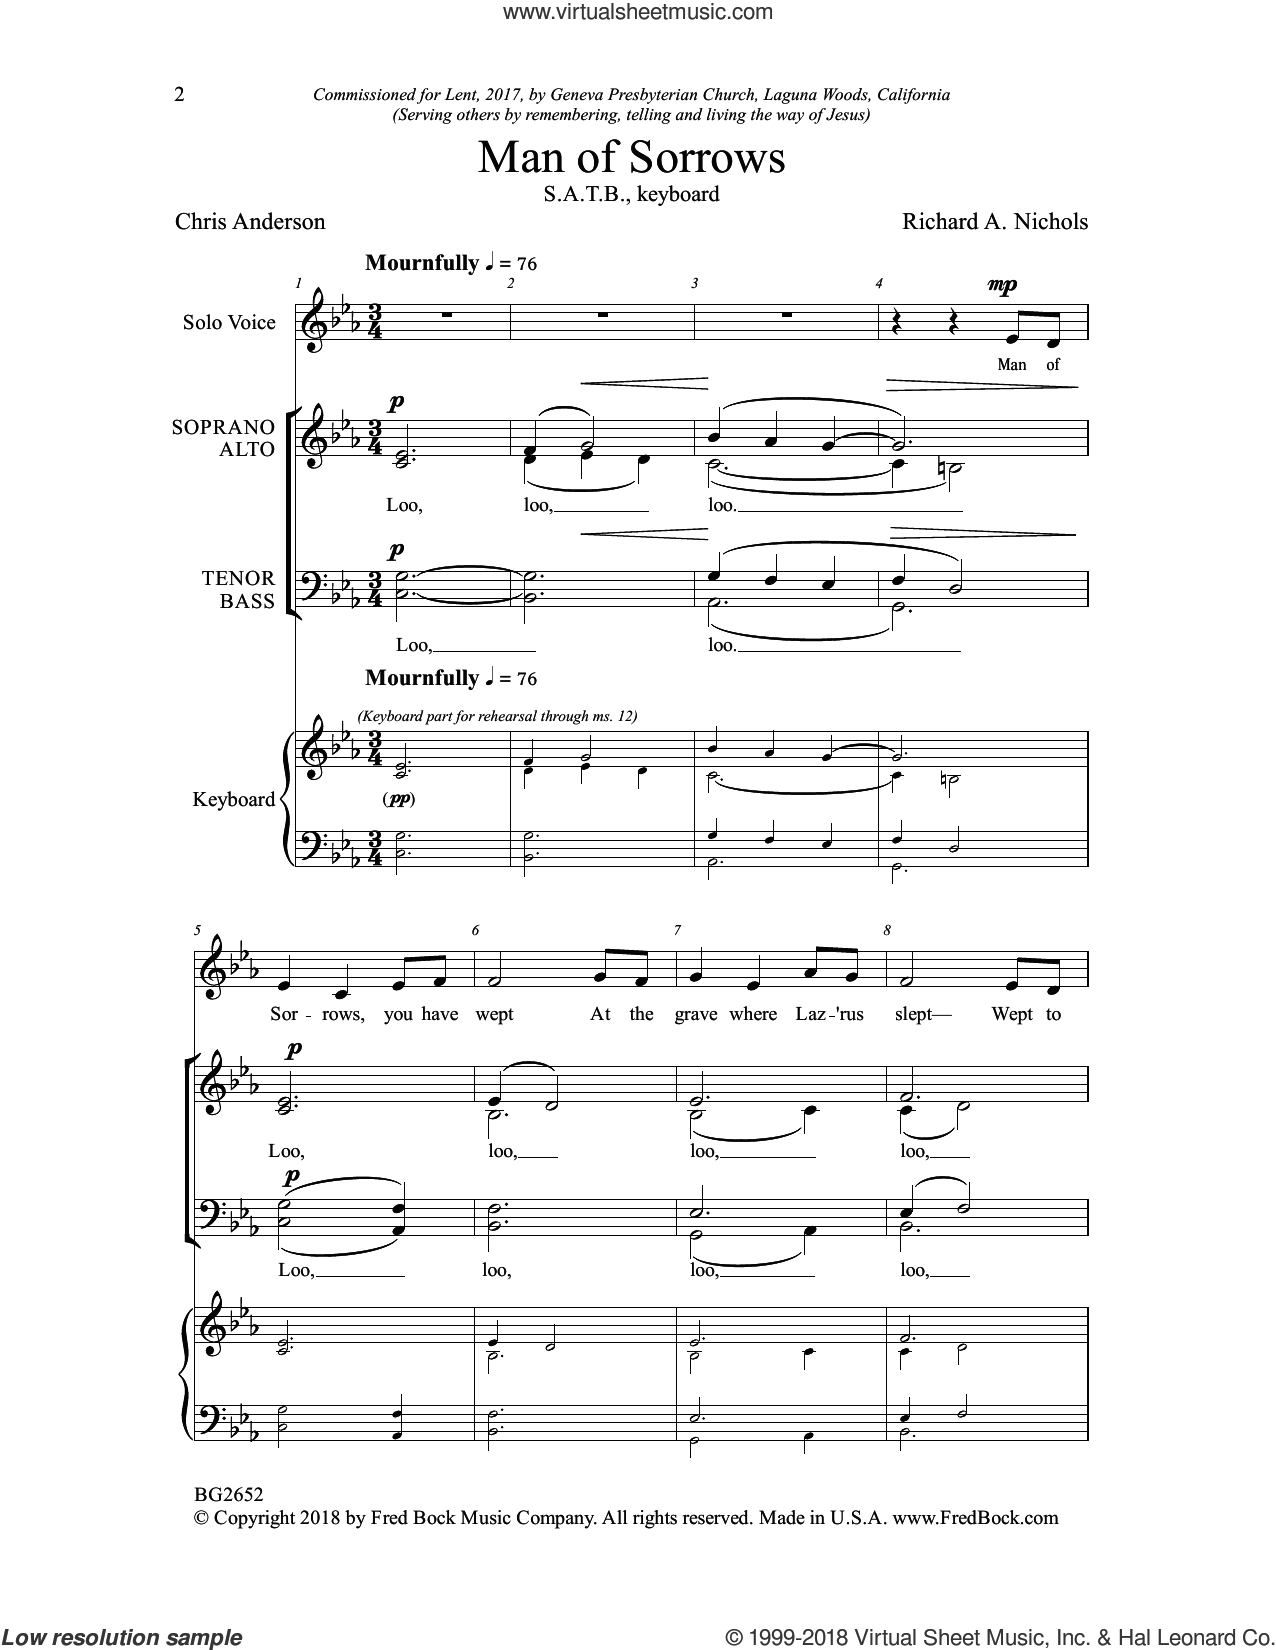 Man of Sorrows sheet music for choir by Chris Anderson and Richard A. Nichols, intermediate skill level